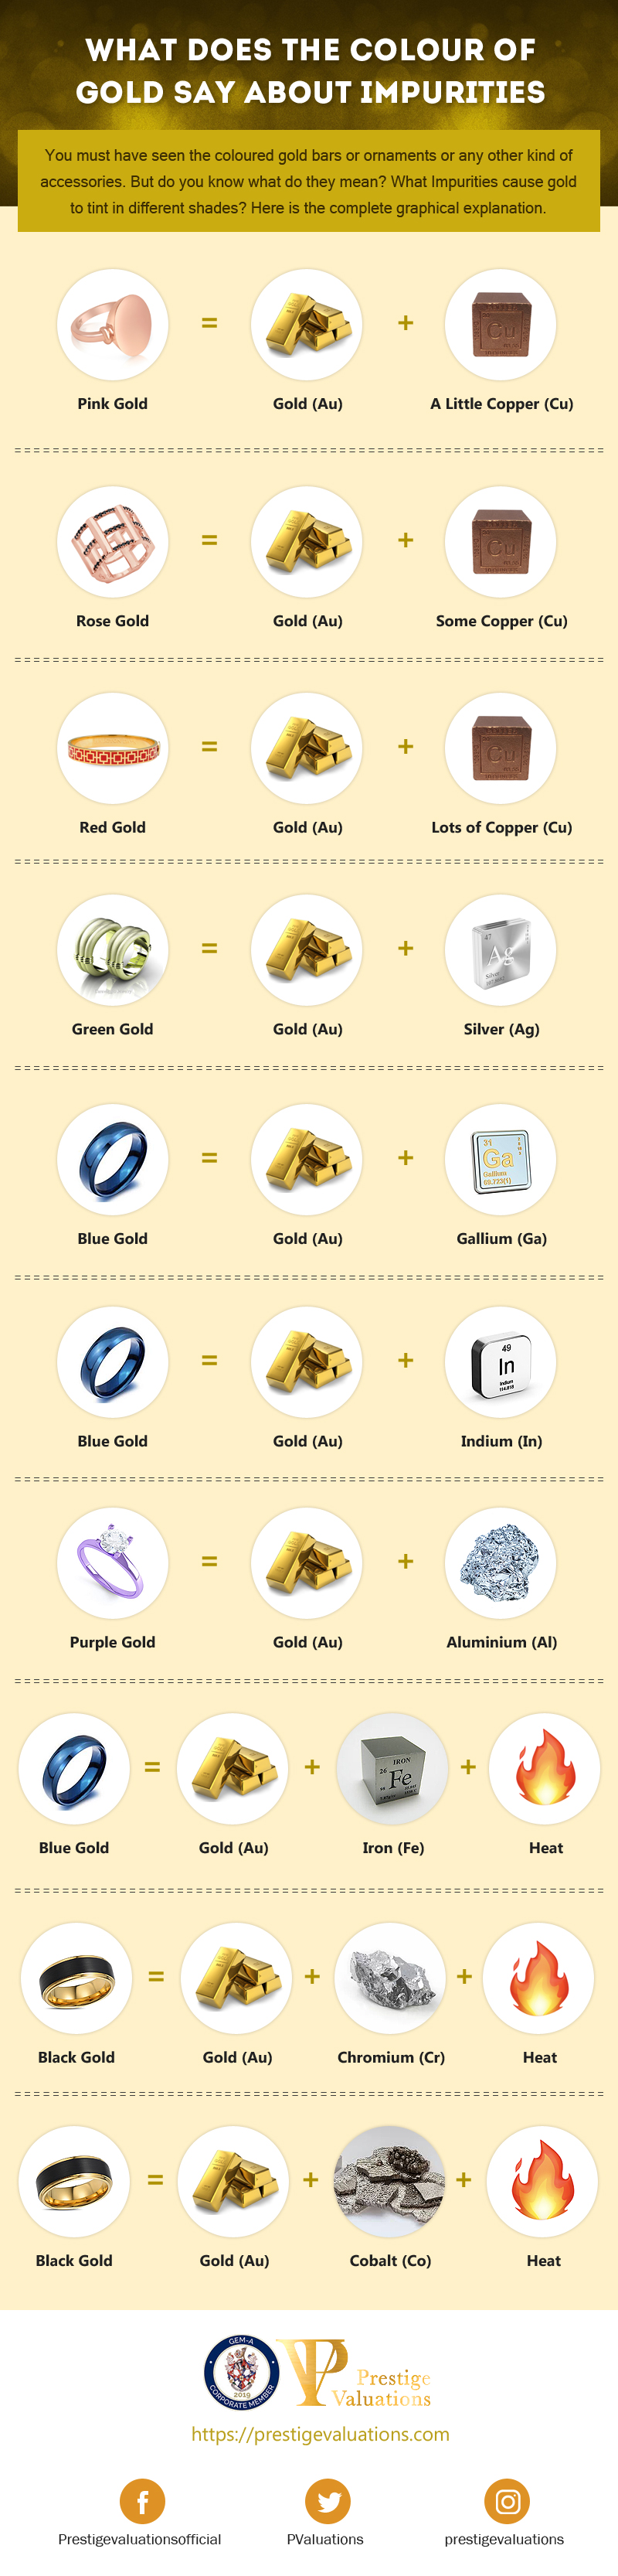 What Colour Of Gold Say About Impurities